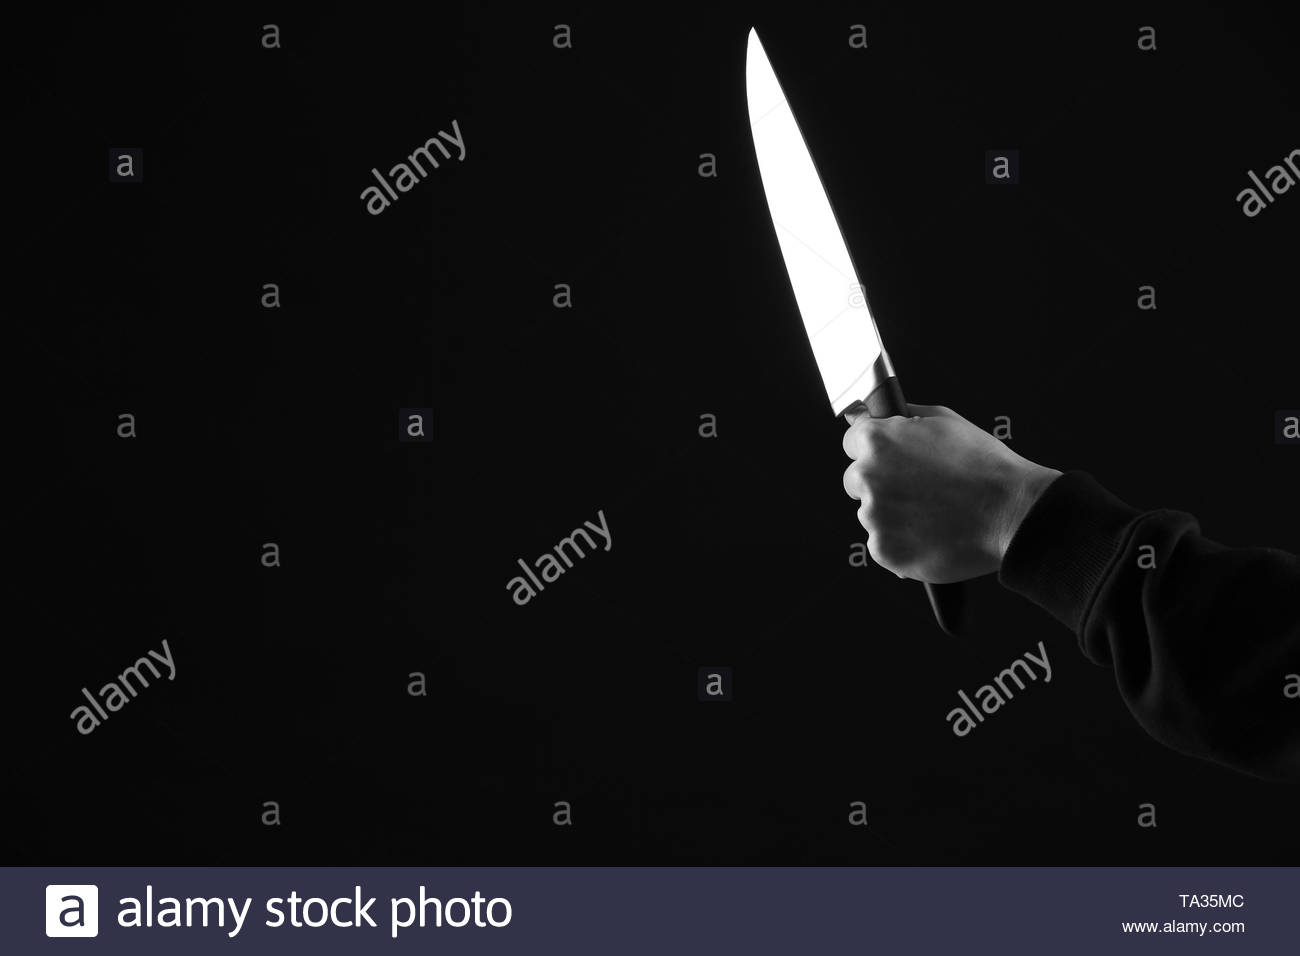 Bandit with knife on dark background Stock Photo 247162060   Alamy 1300x956